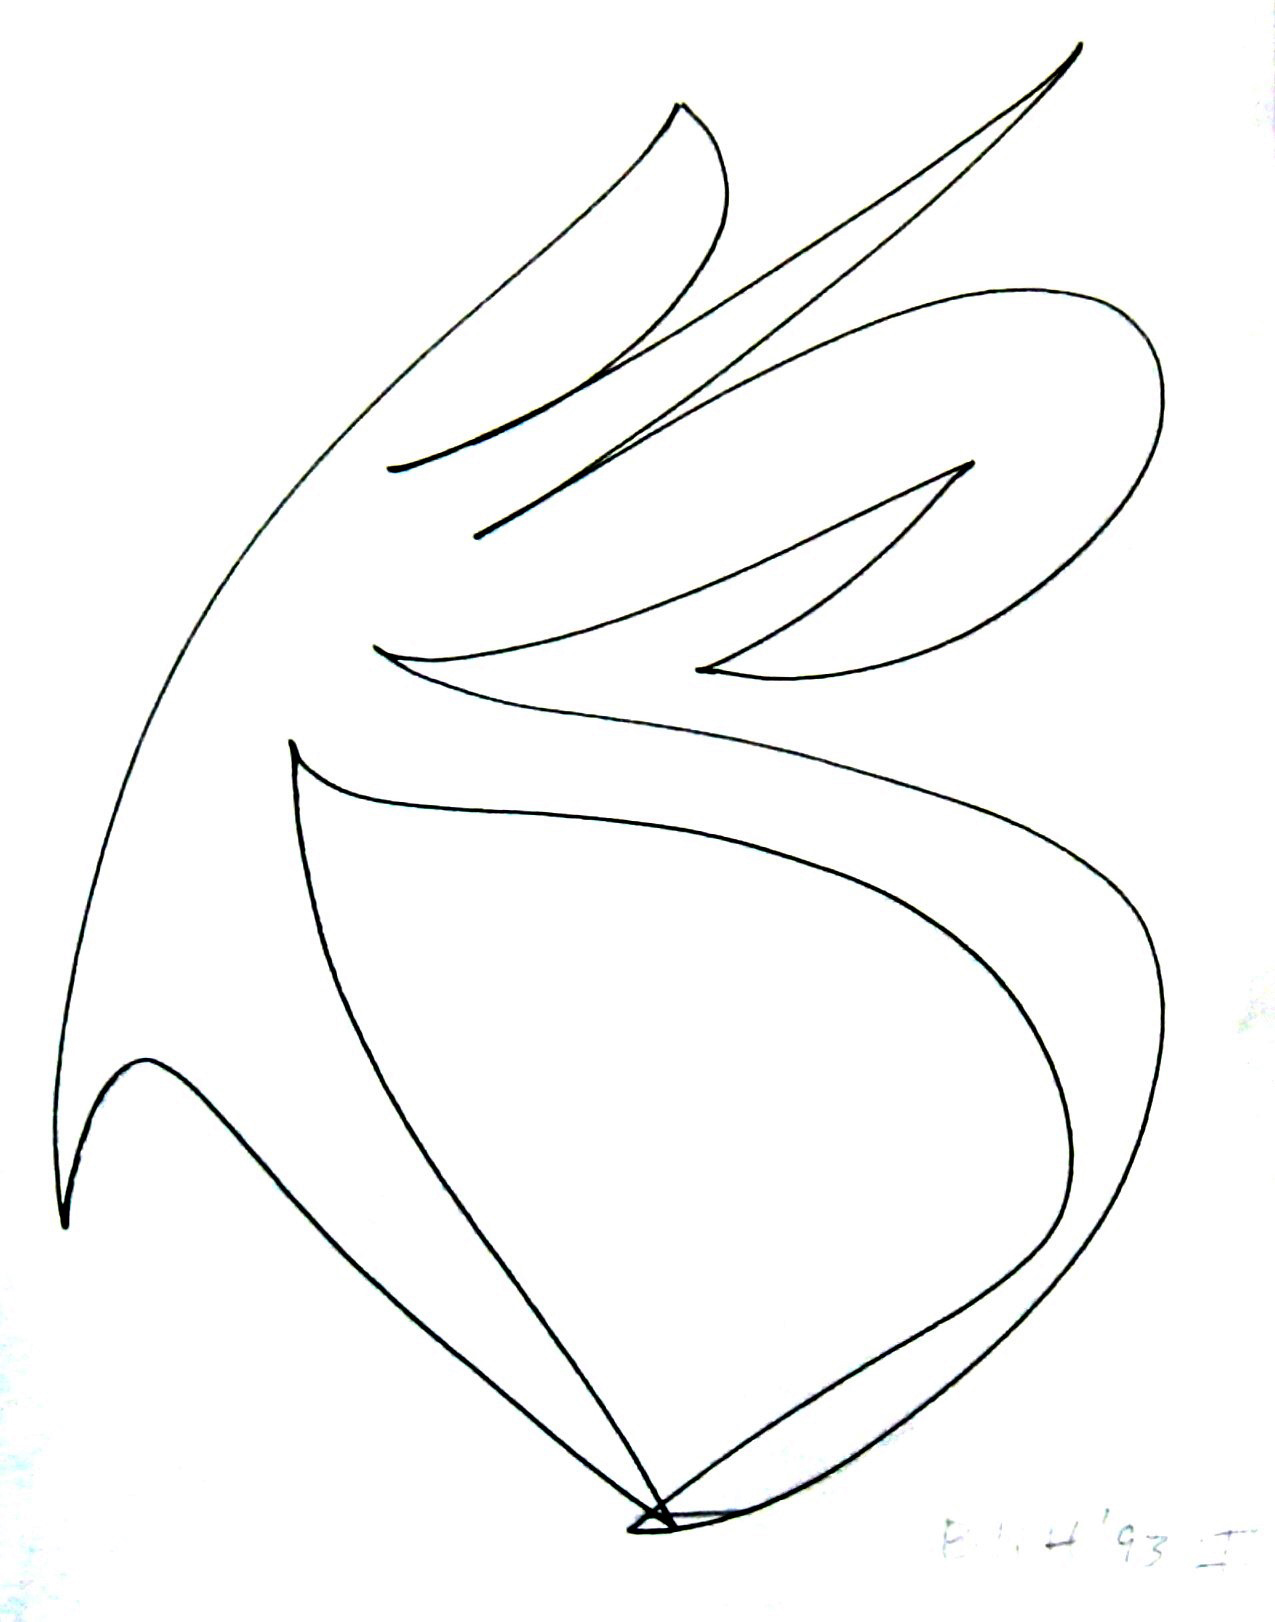 Iceland Silent Energy  1993, ink on paper, 11x8.5 in